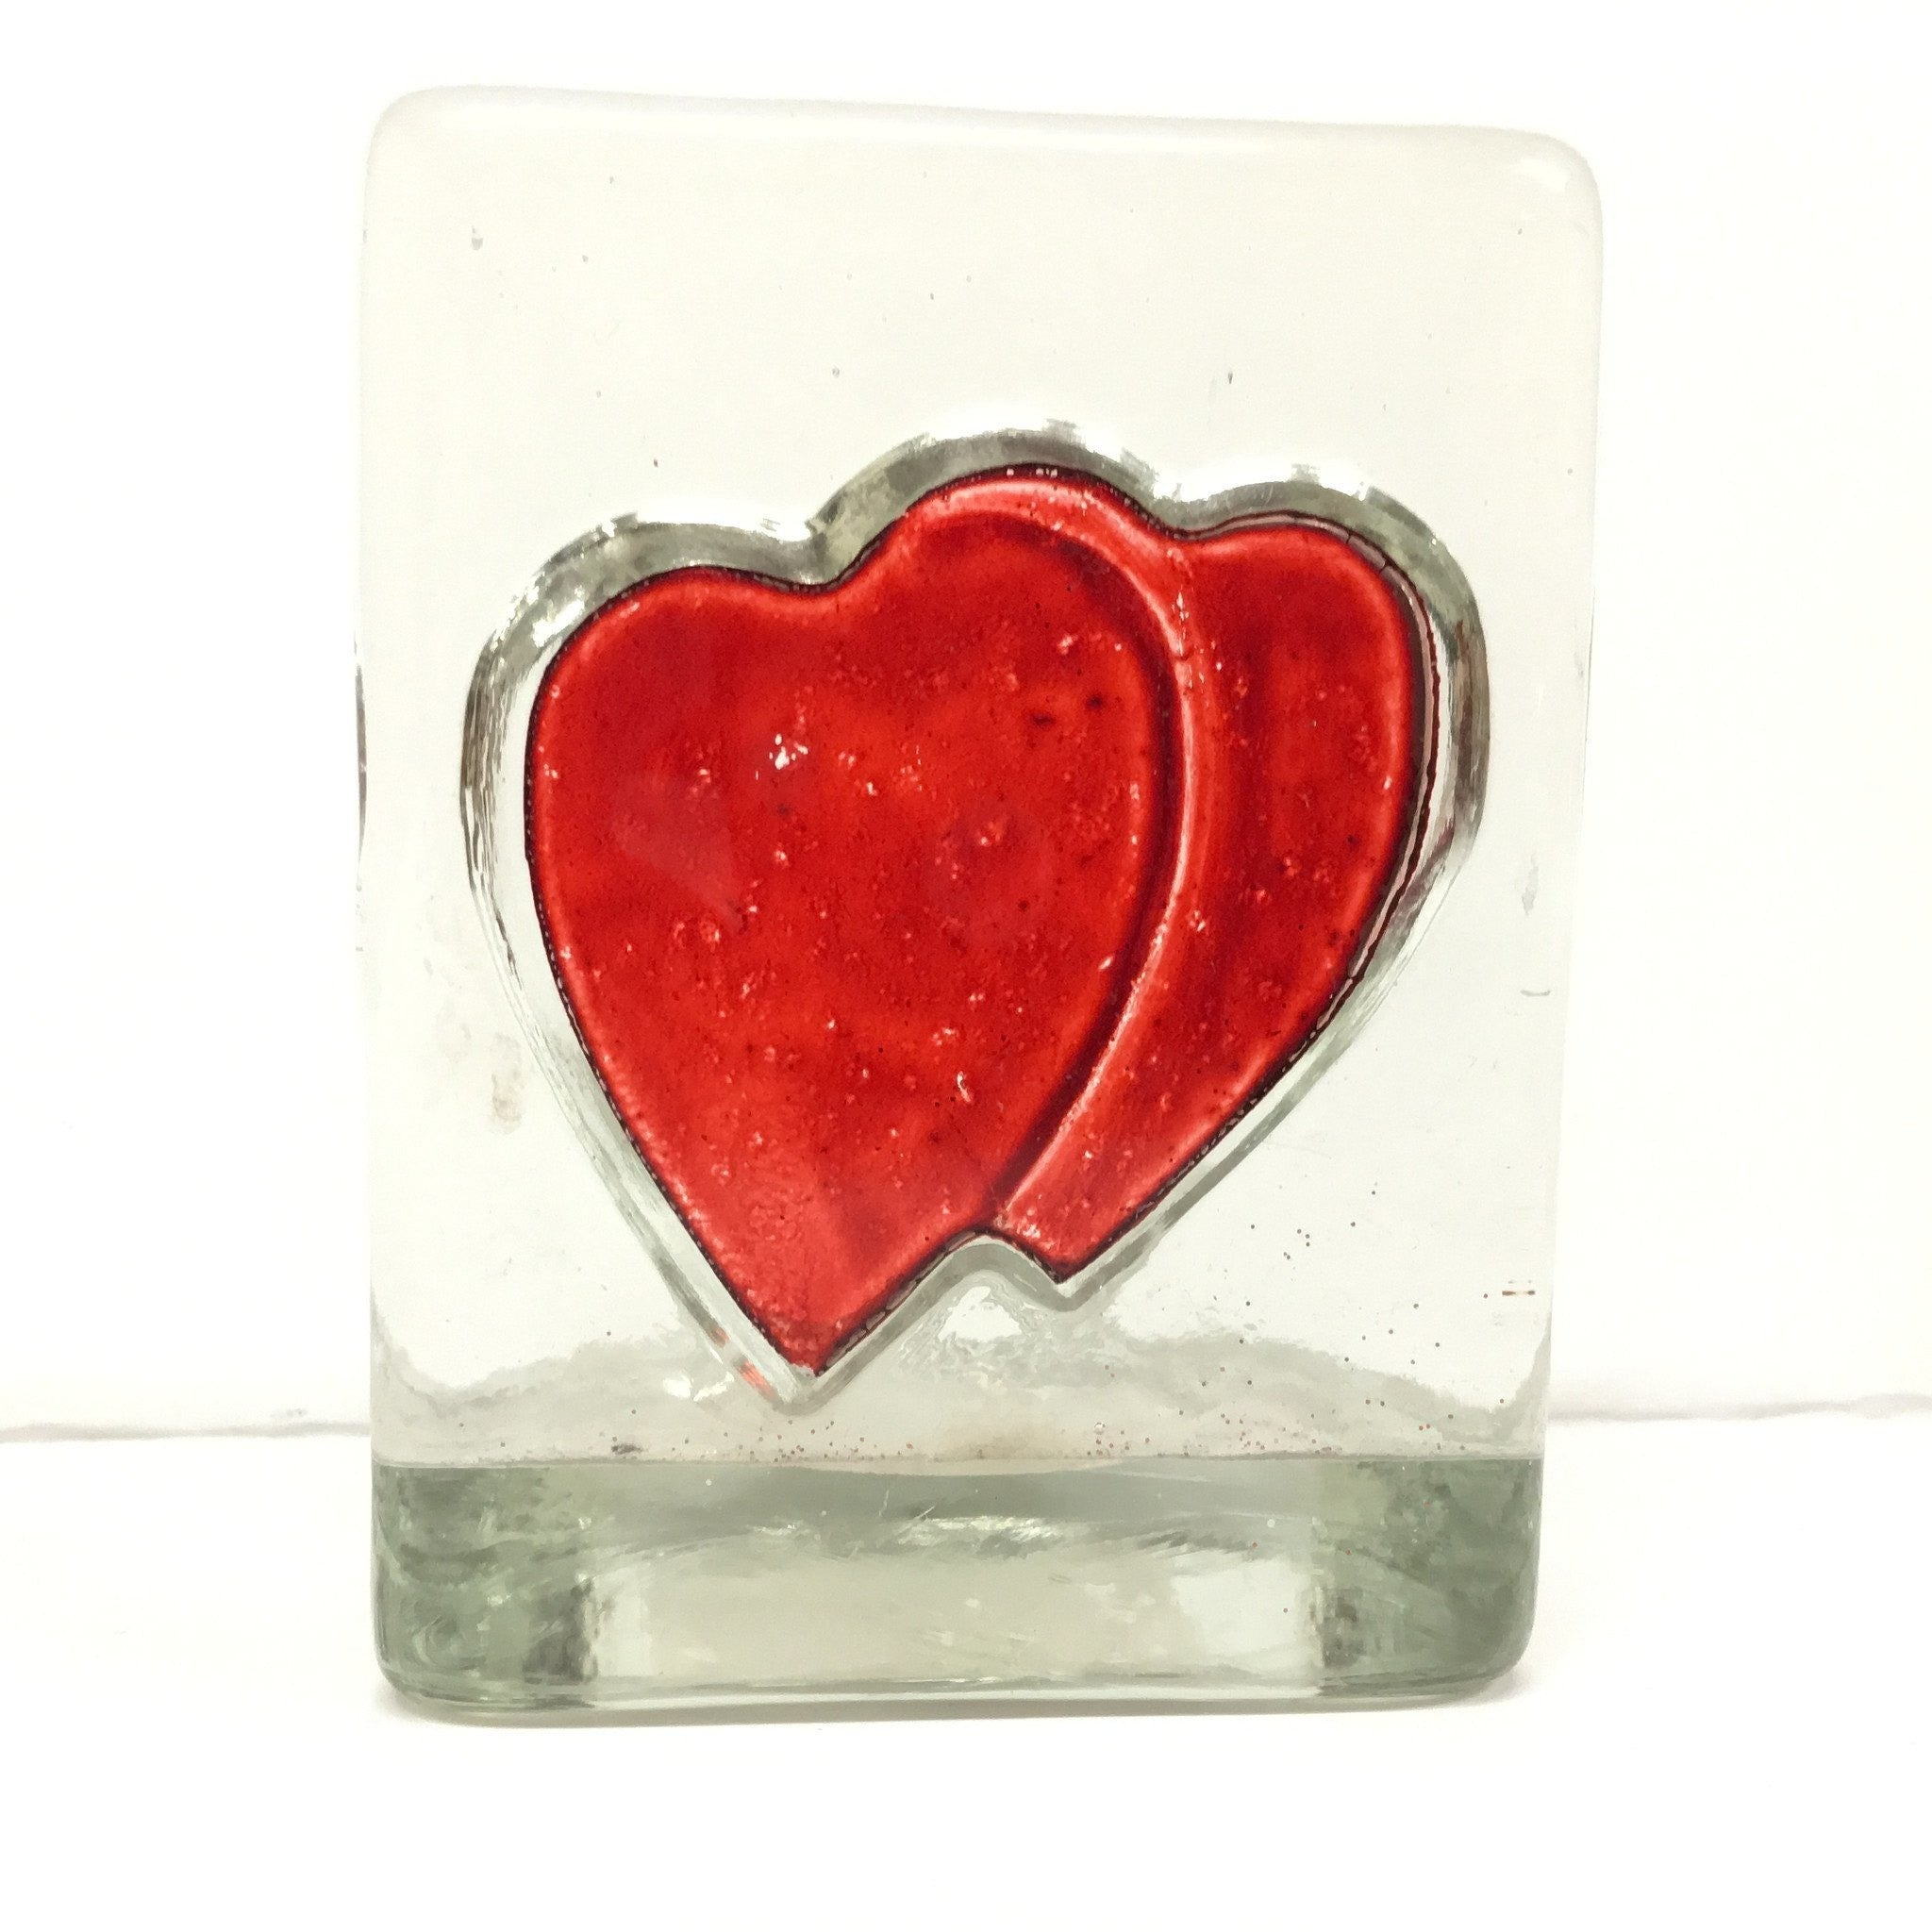 Heart Glass Tealights Holder -  - Bella-Mia Naturals All Natural Soy Candles & Lip Balms - 1